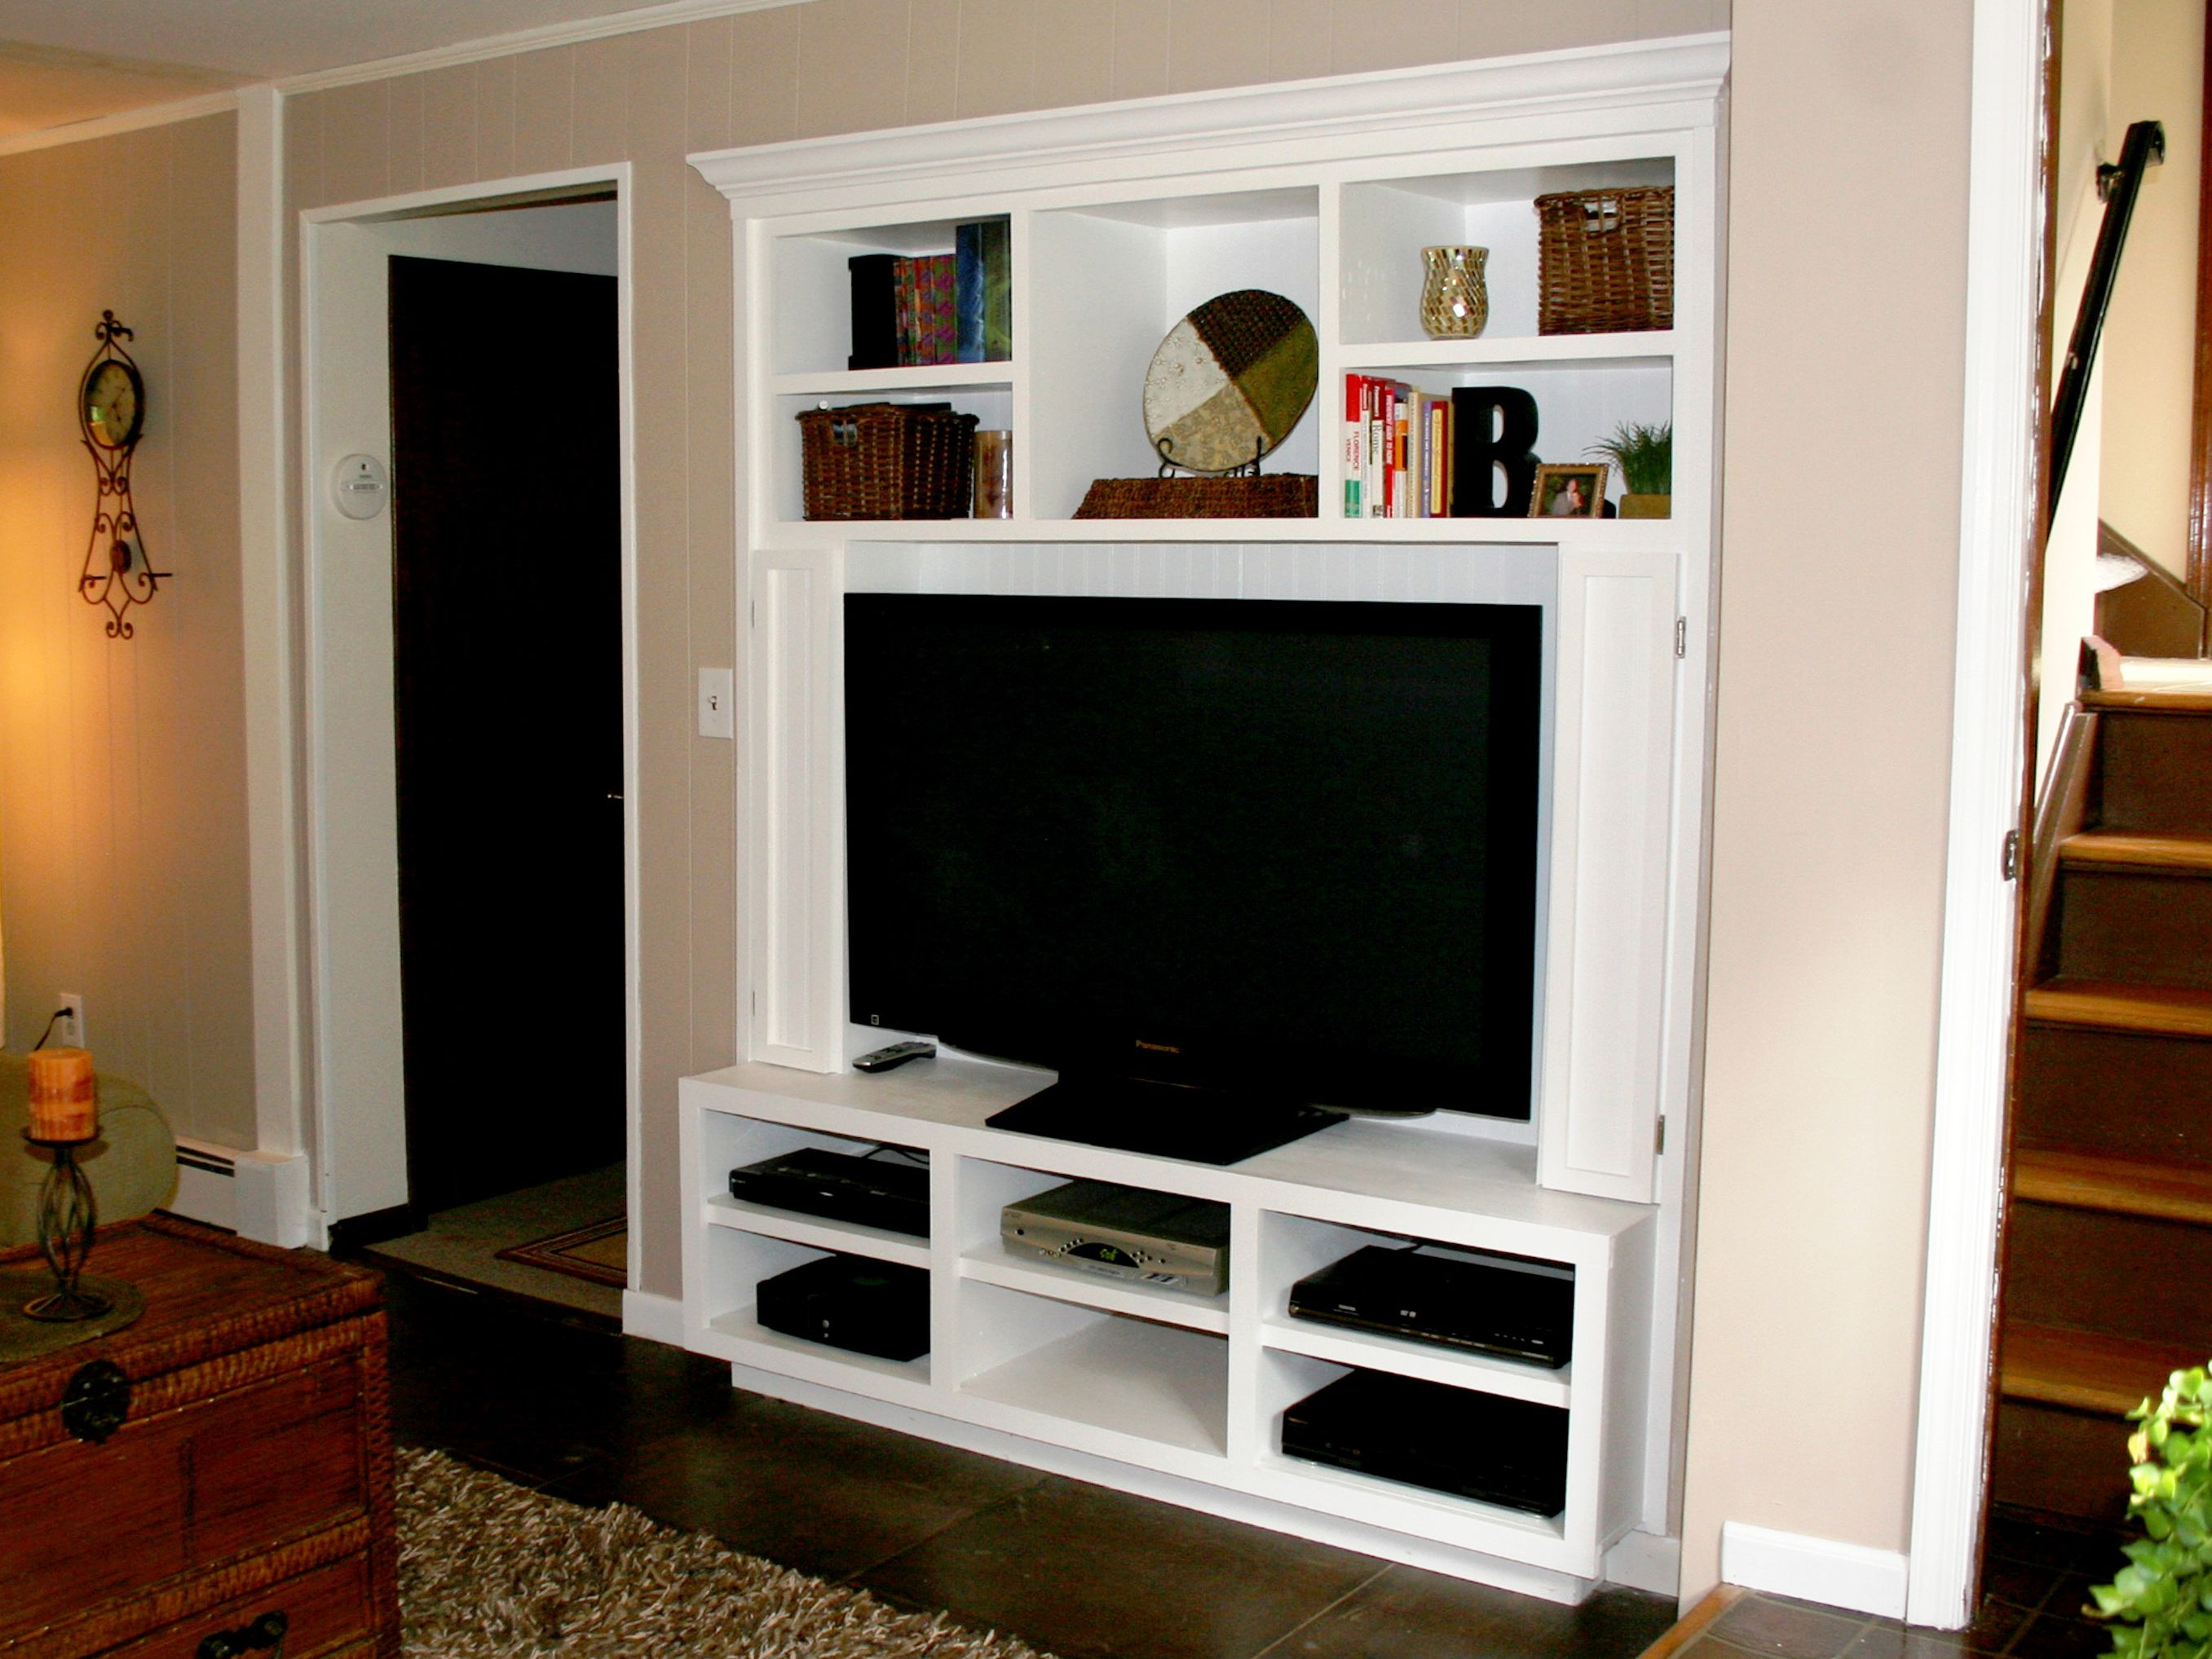 Built In Entertainment Center To Maximize Storage Space